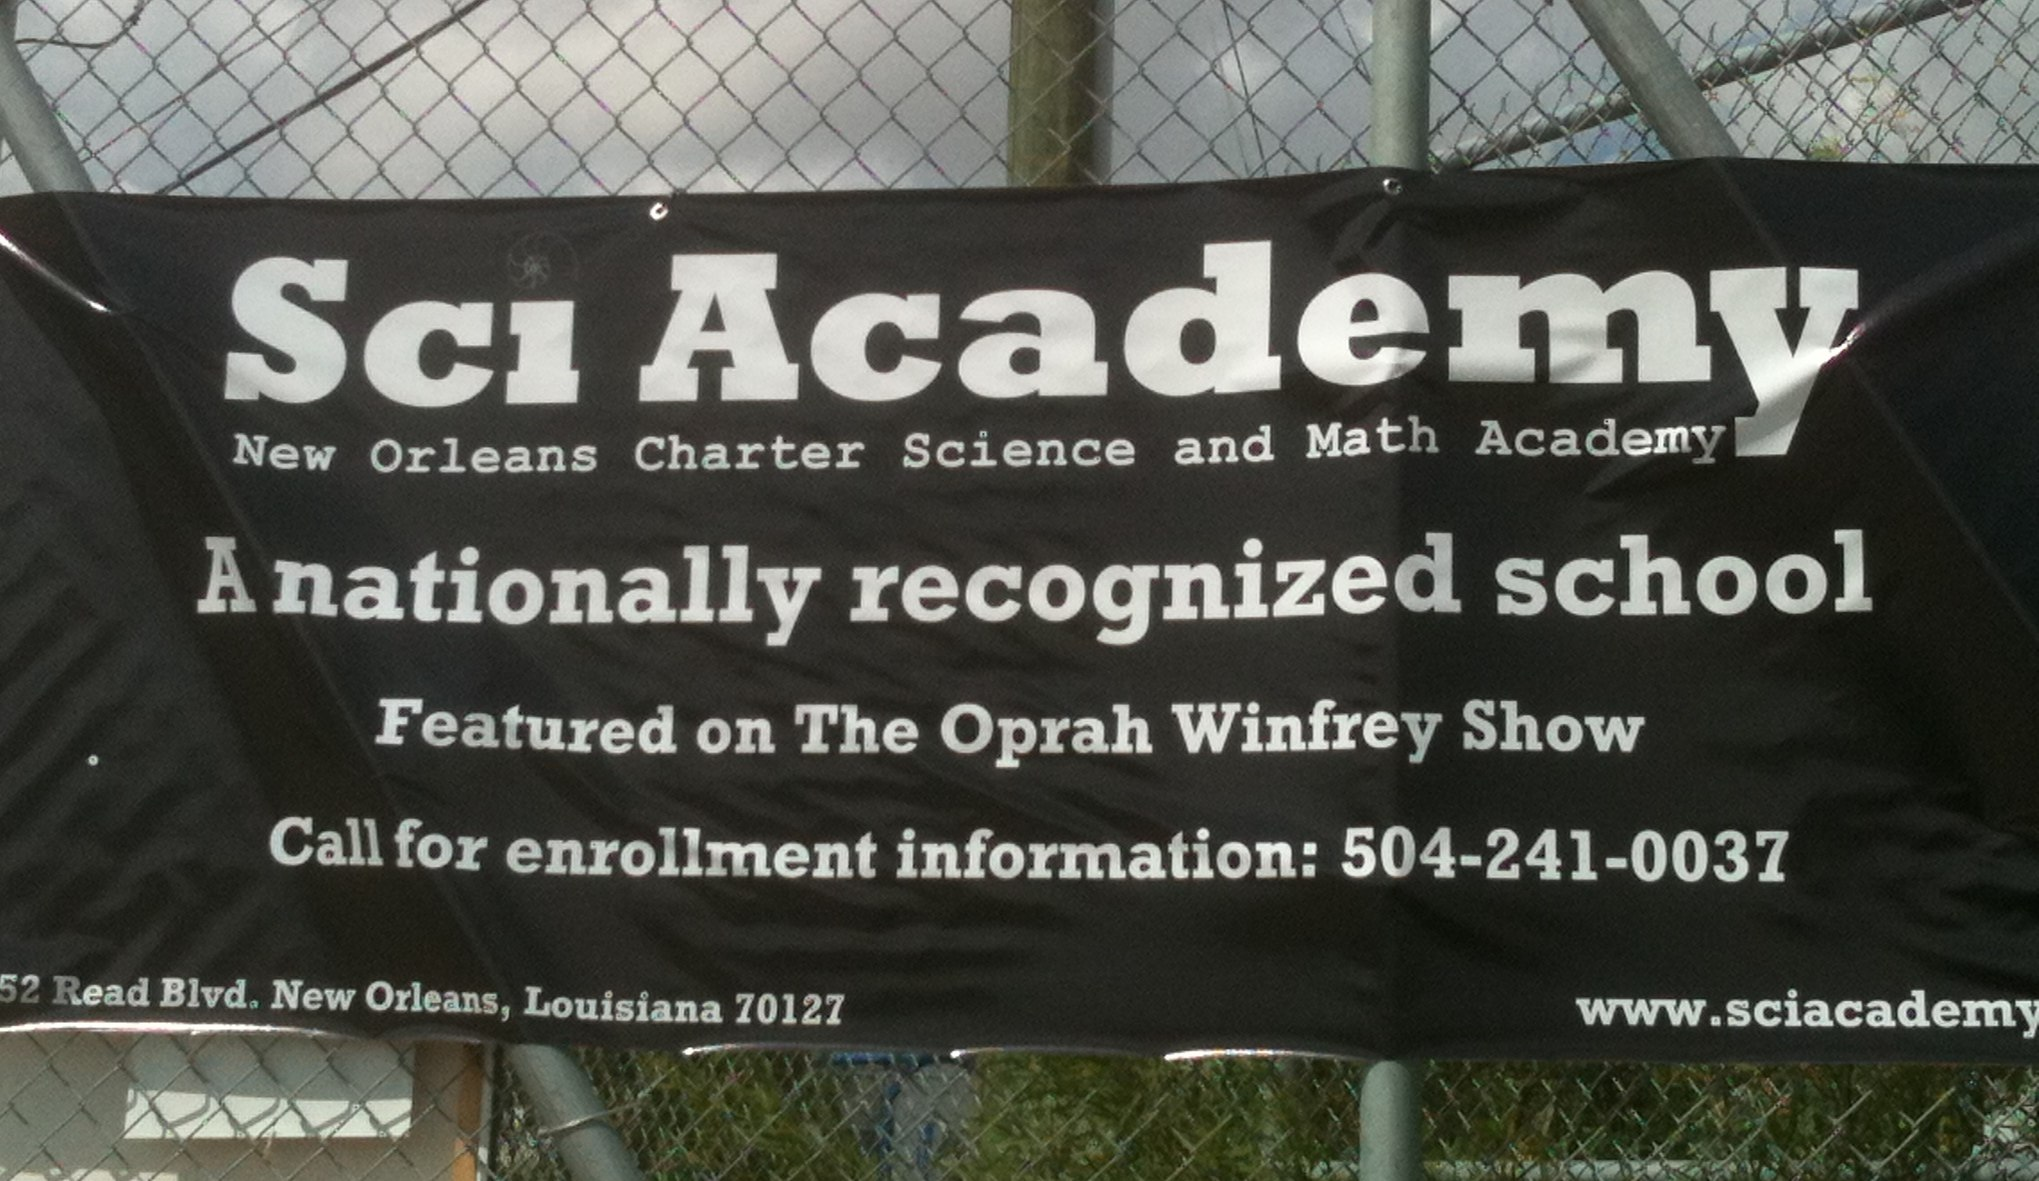 Sci Academy outperformed its predicted ACT Index by 34 points.